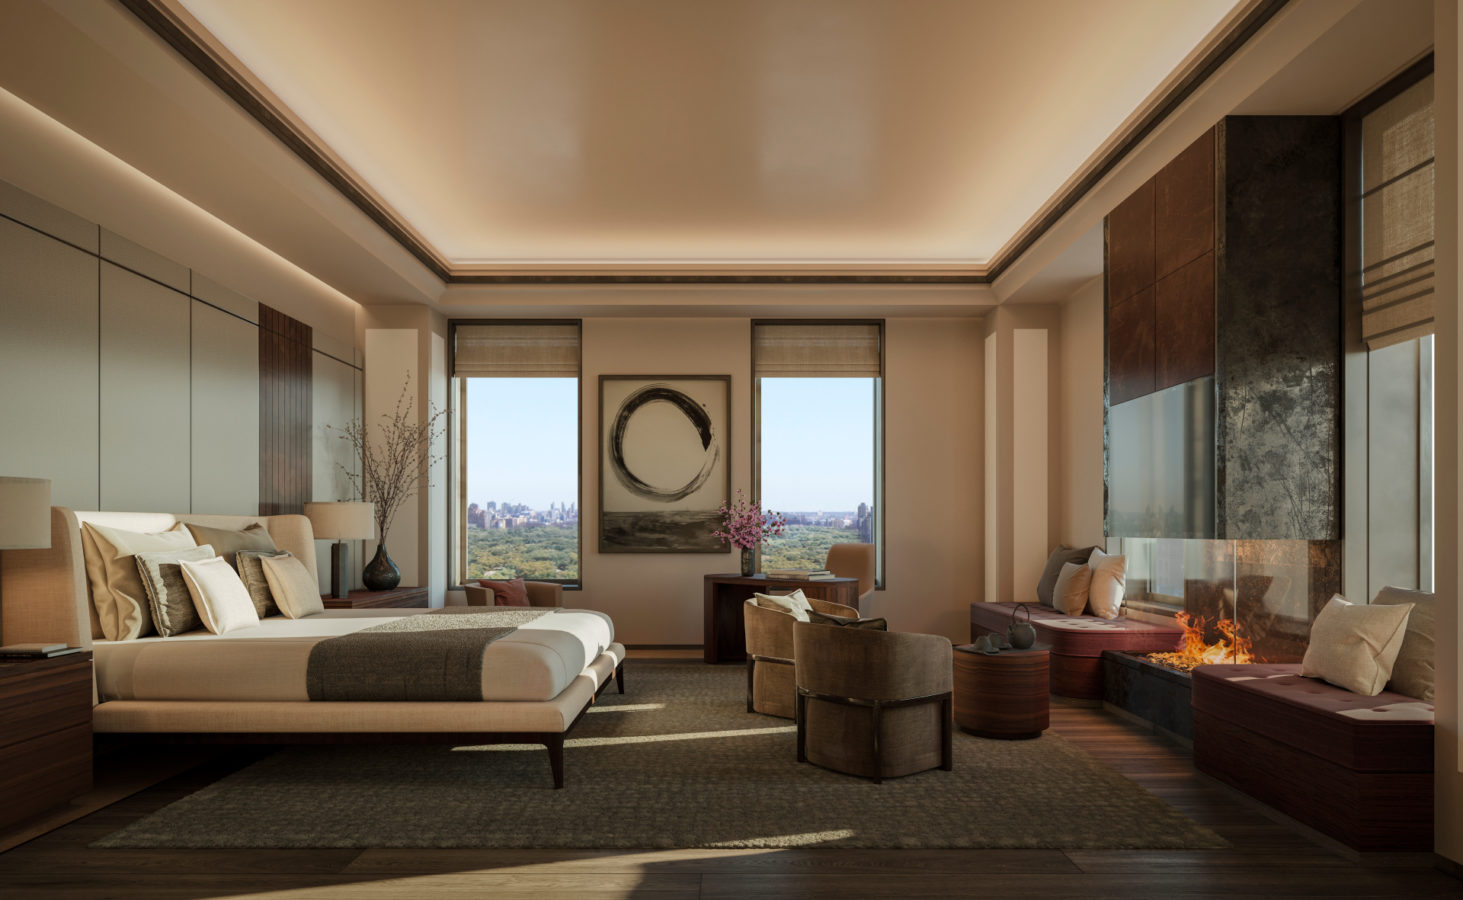 Branded residences opening in 2021: Aman New York, Rosewood Mayakoba, Four Seasons and more